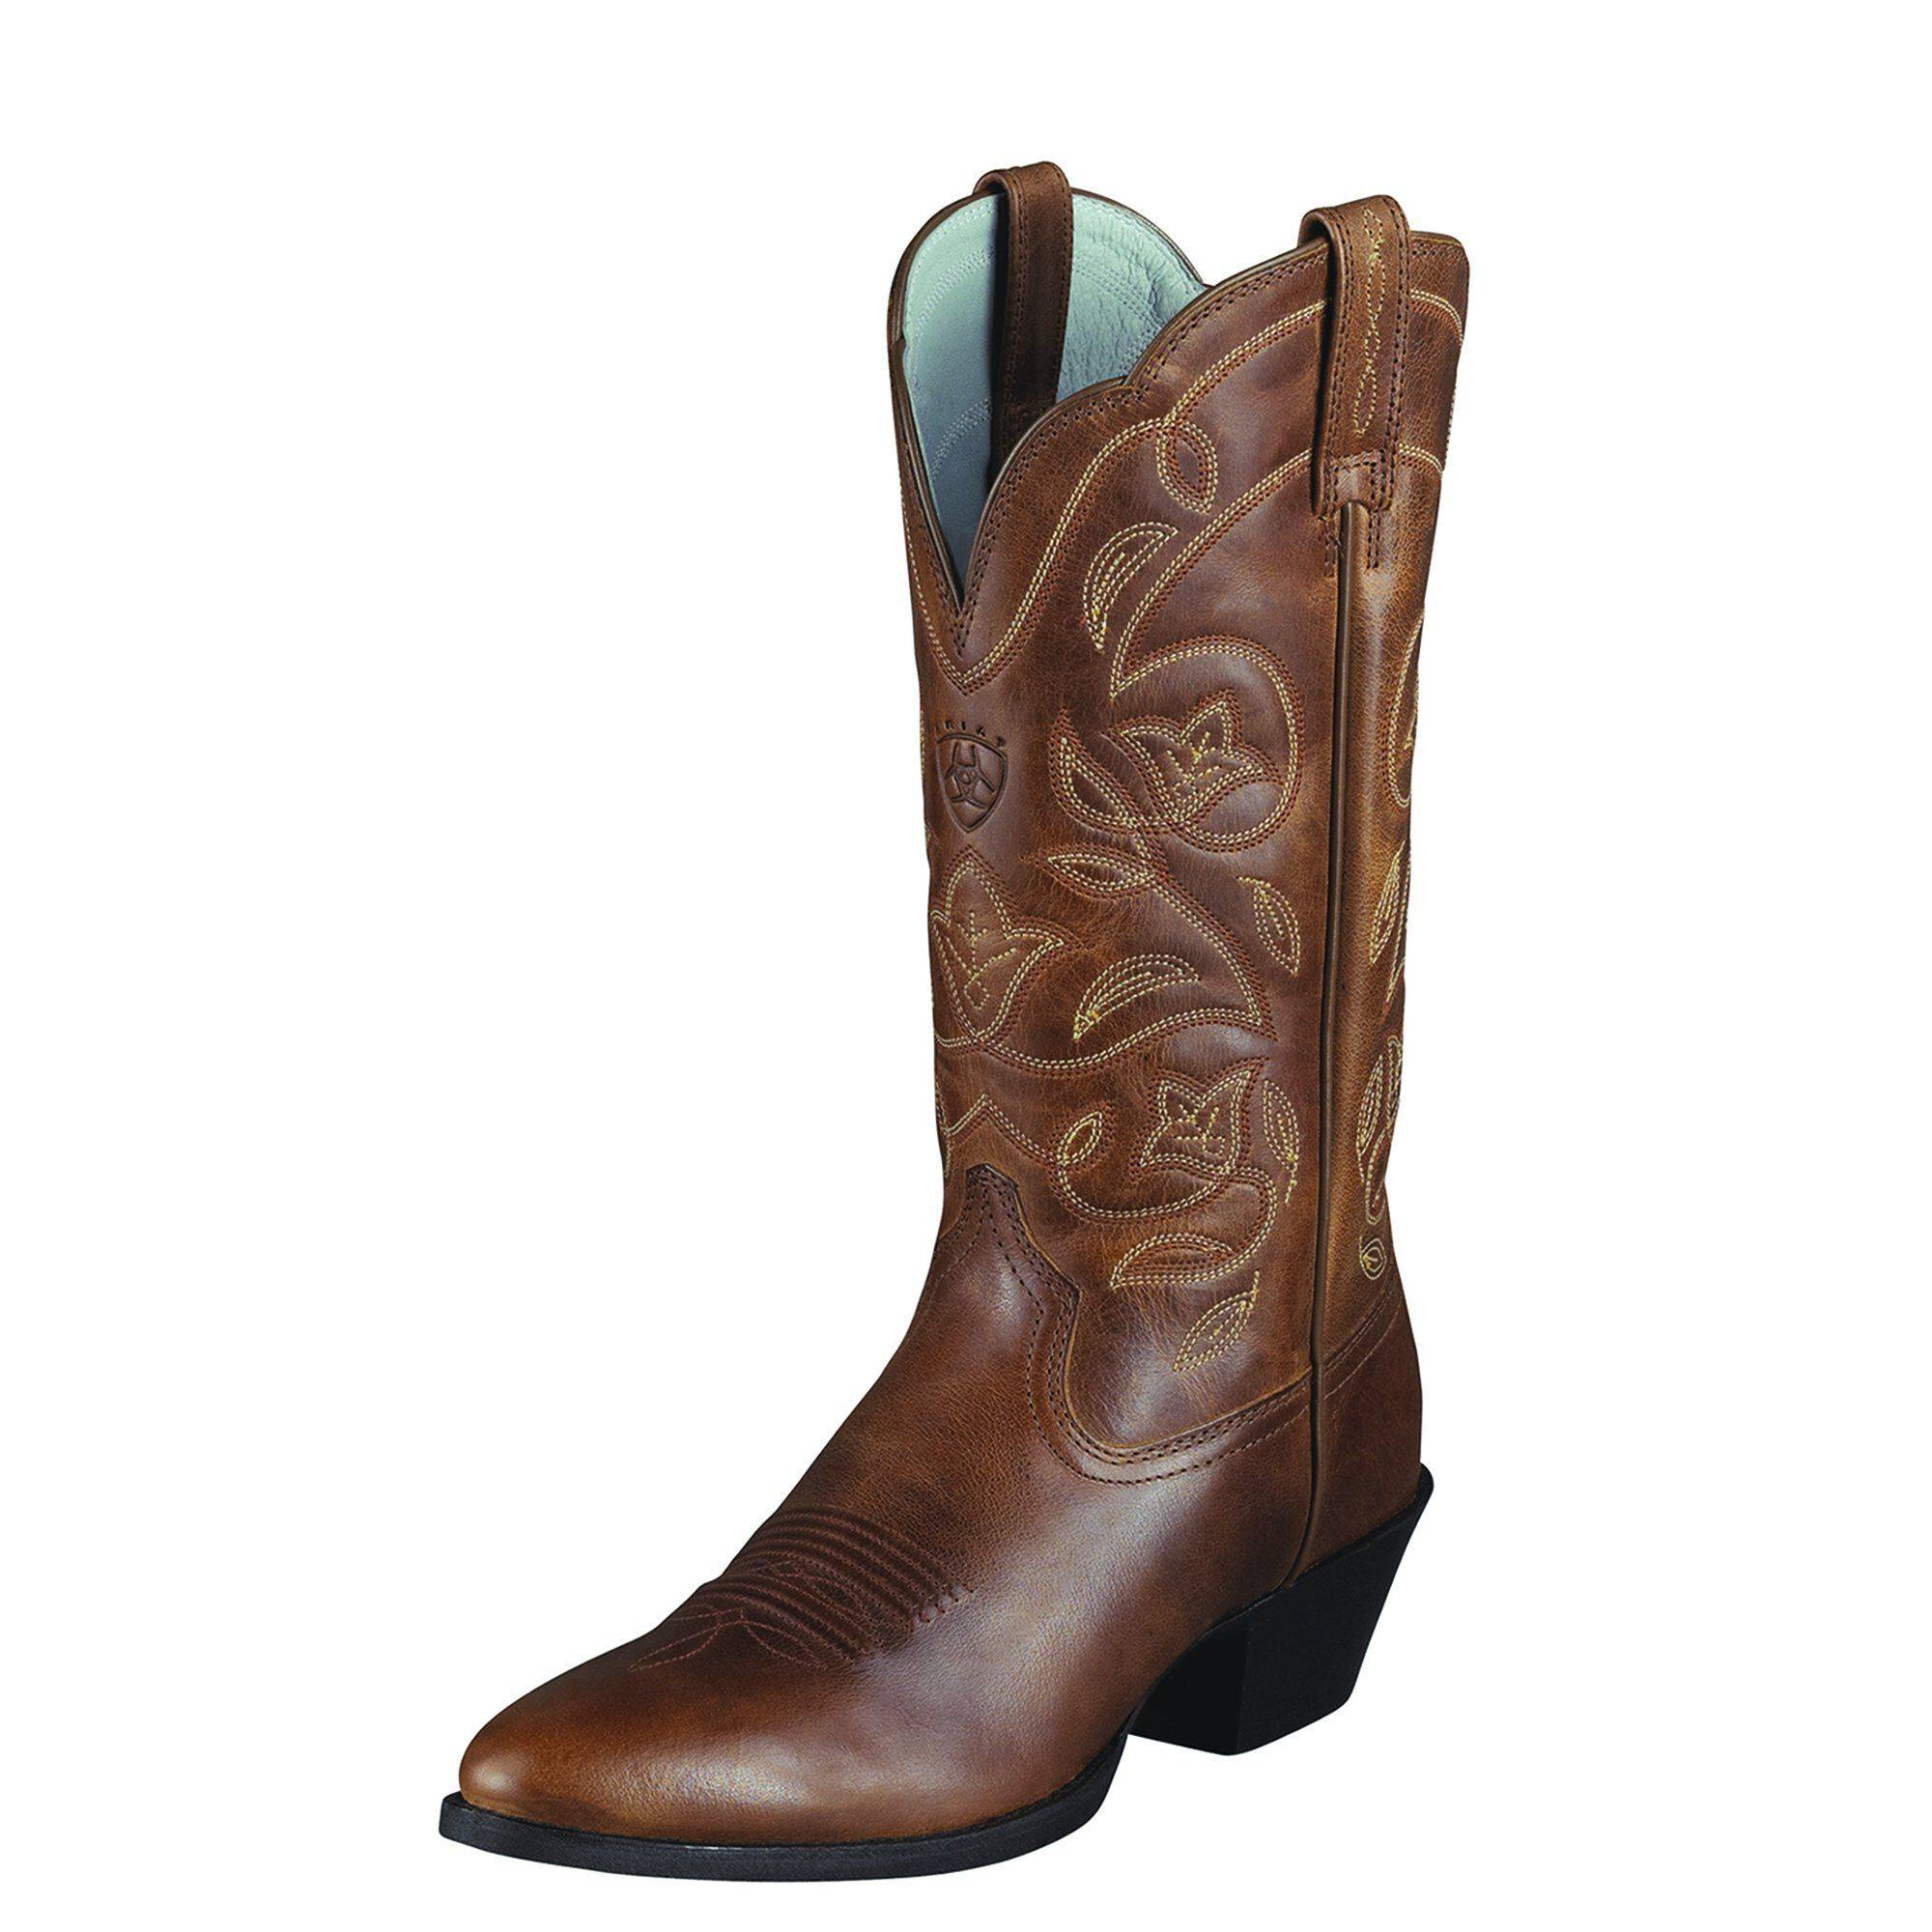 Ariat Women's Heritage R Toe Western Boots in Russet Rebel, Size 12 B / Medium by Ariat